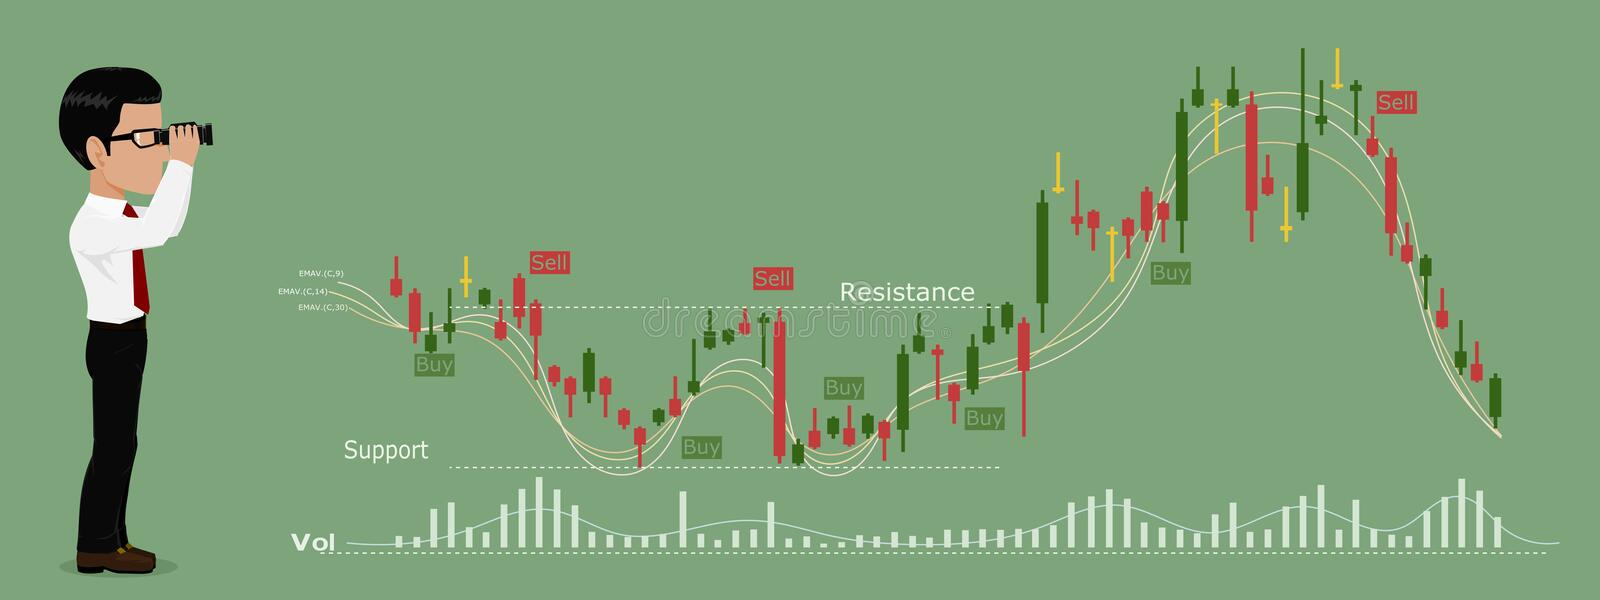 Trader is watching stock chart stock illustration